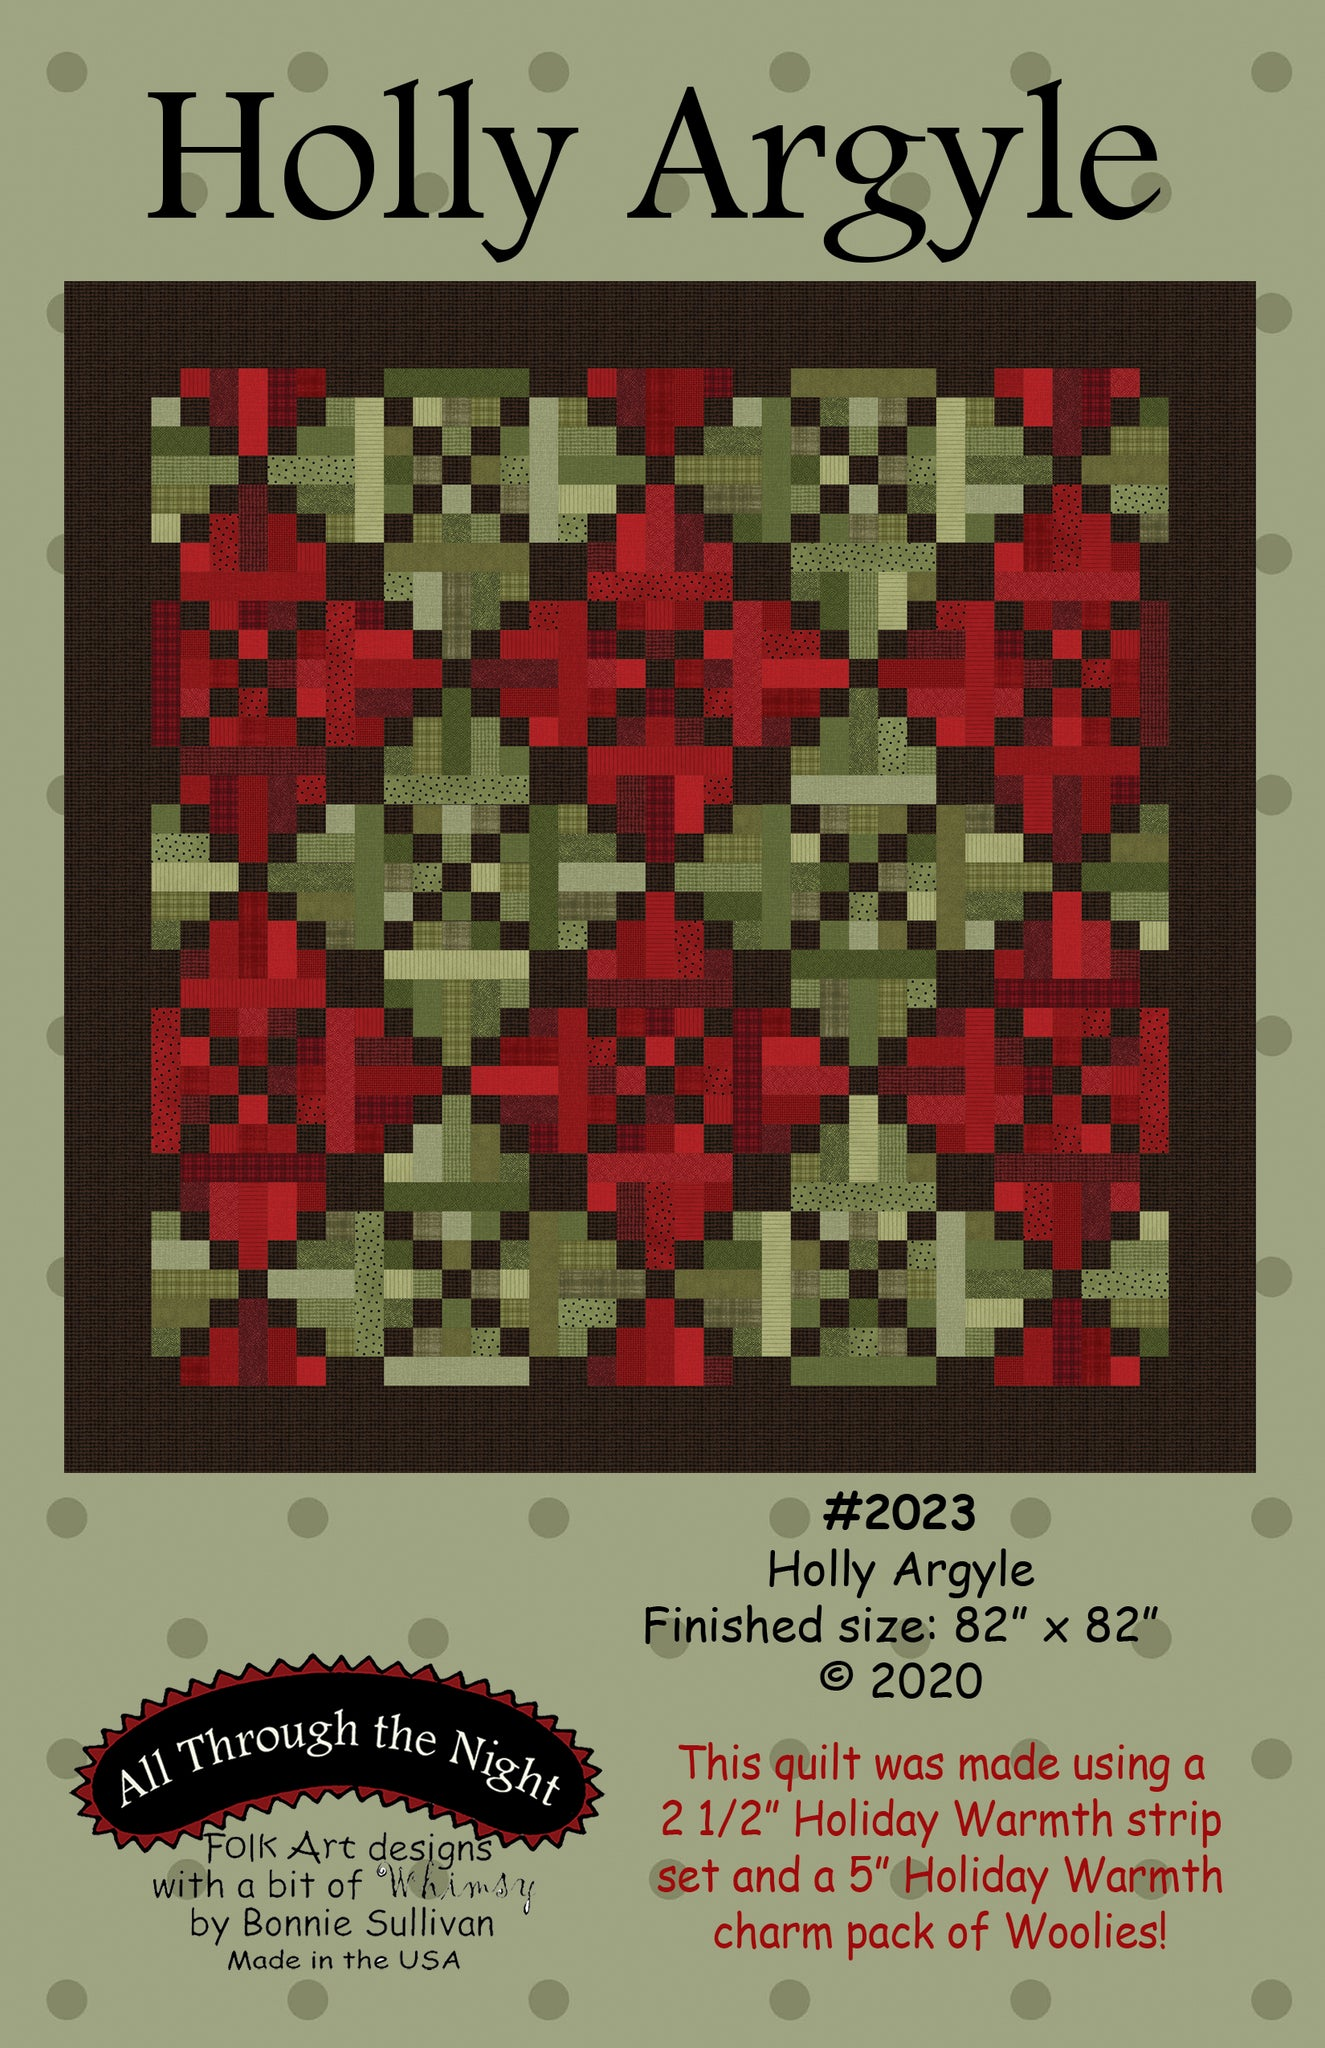 2023 - Holly Argyle